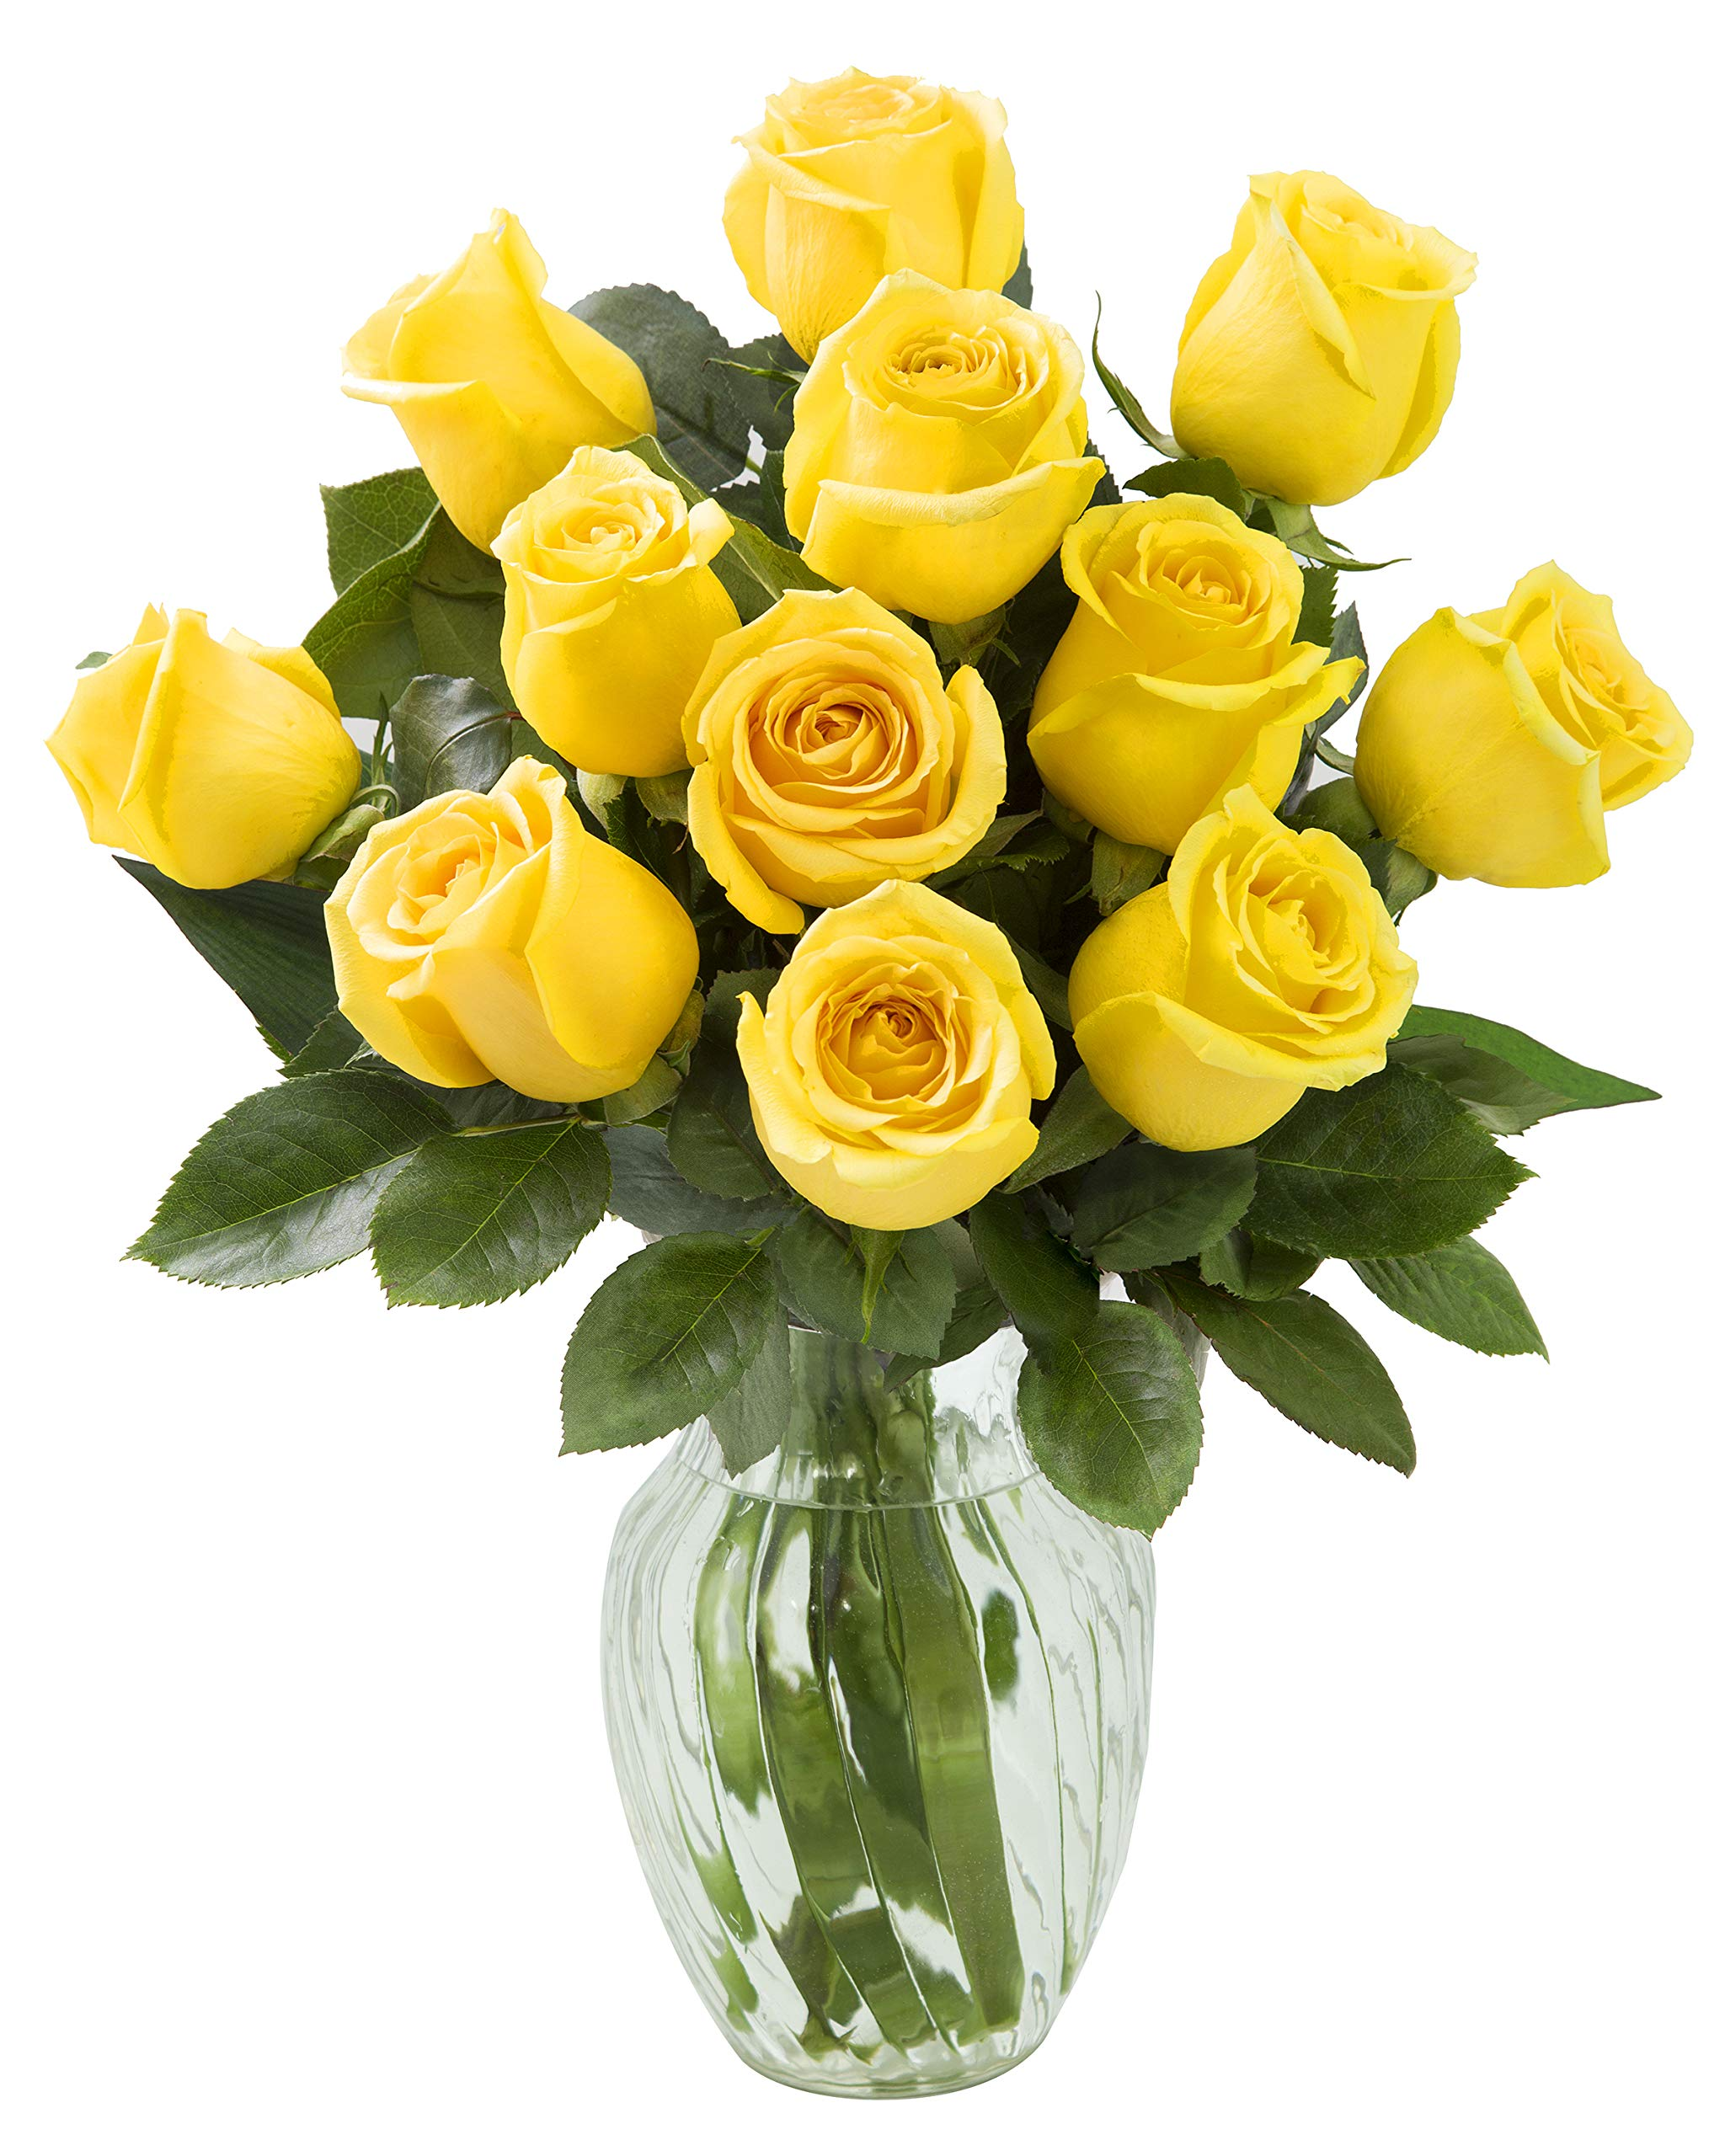 KaBloom Bouquet of 12 Fresh Yellow Roses (Farm-Fresh, Long-Stem) with Vase by KaBloom